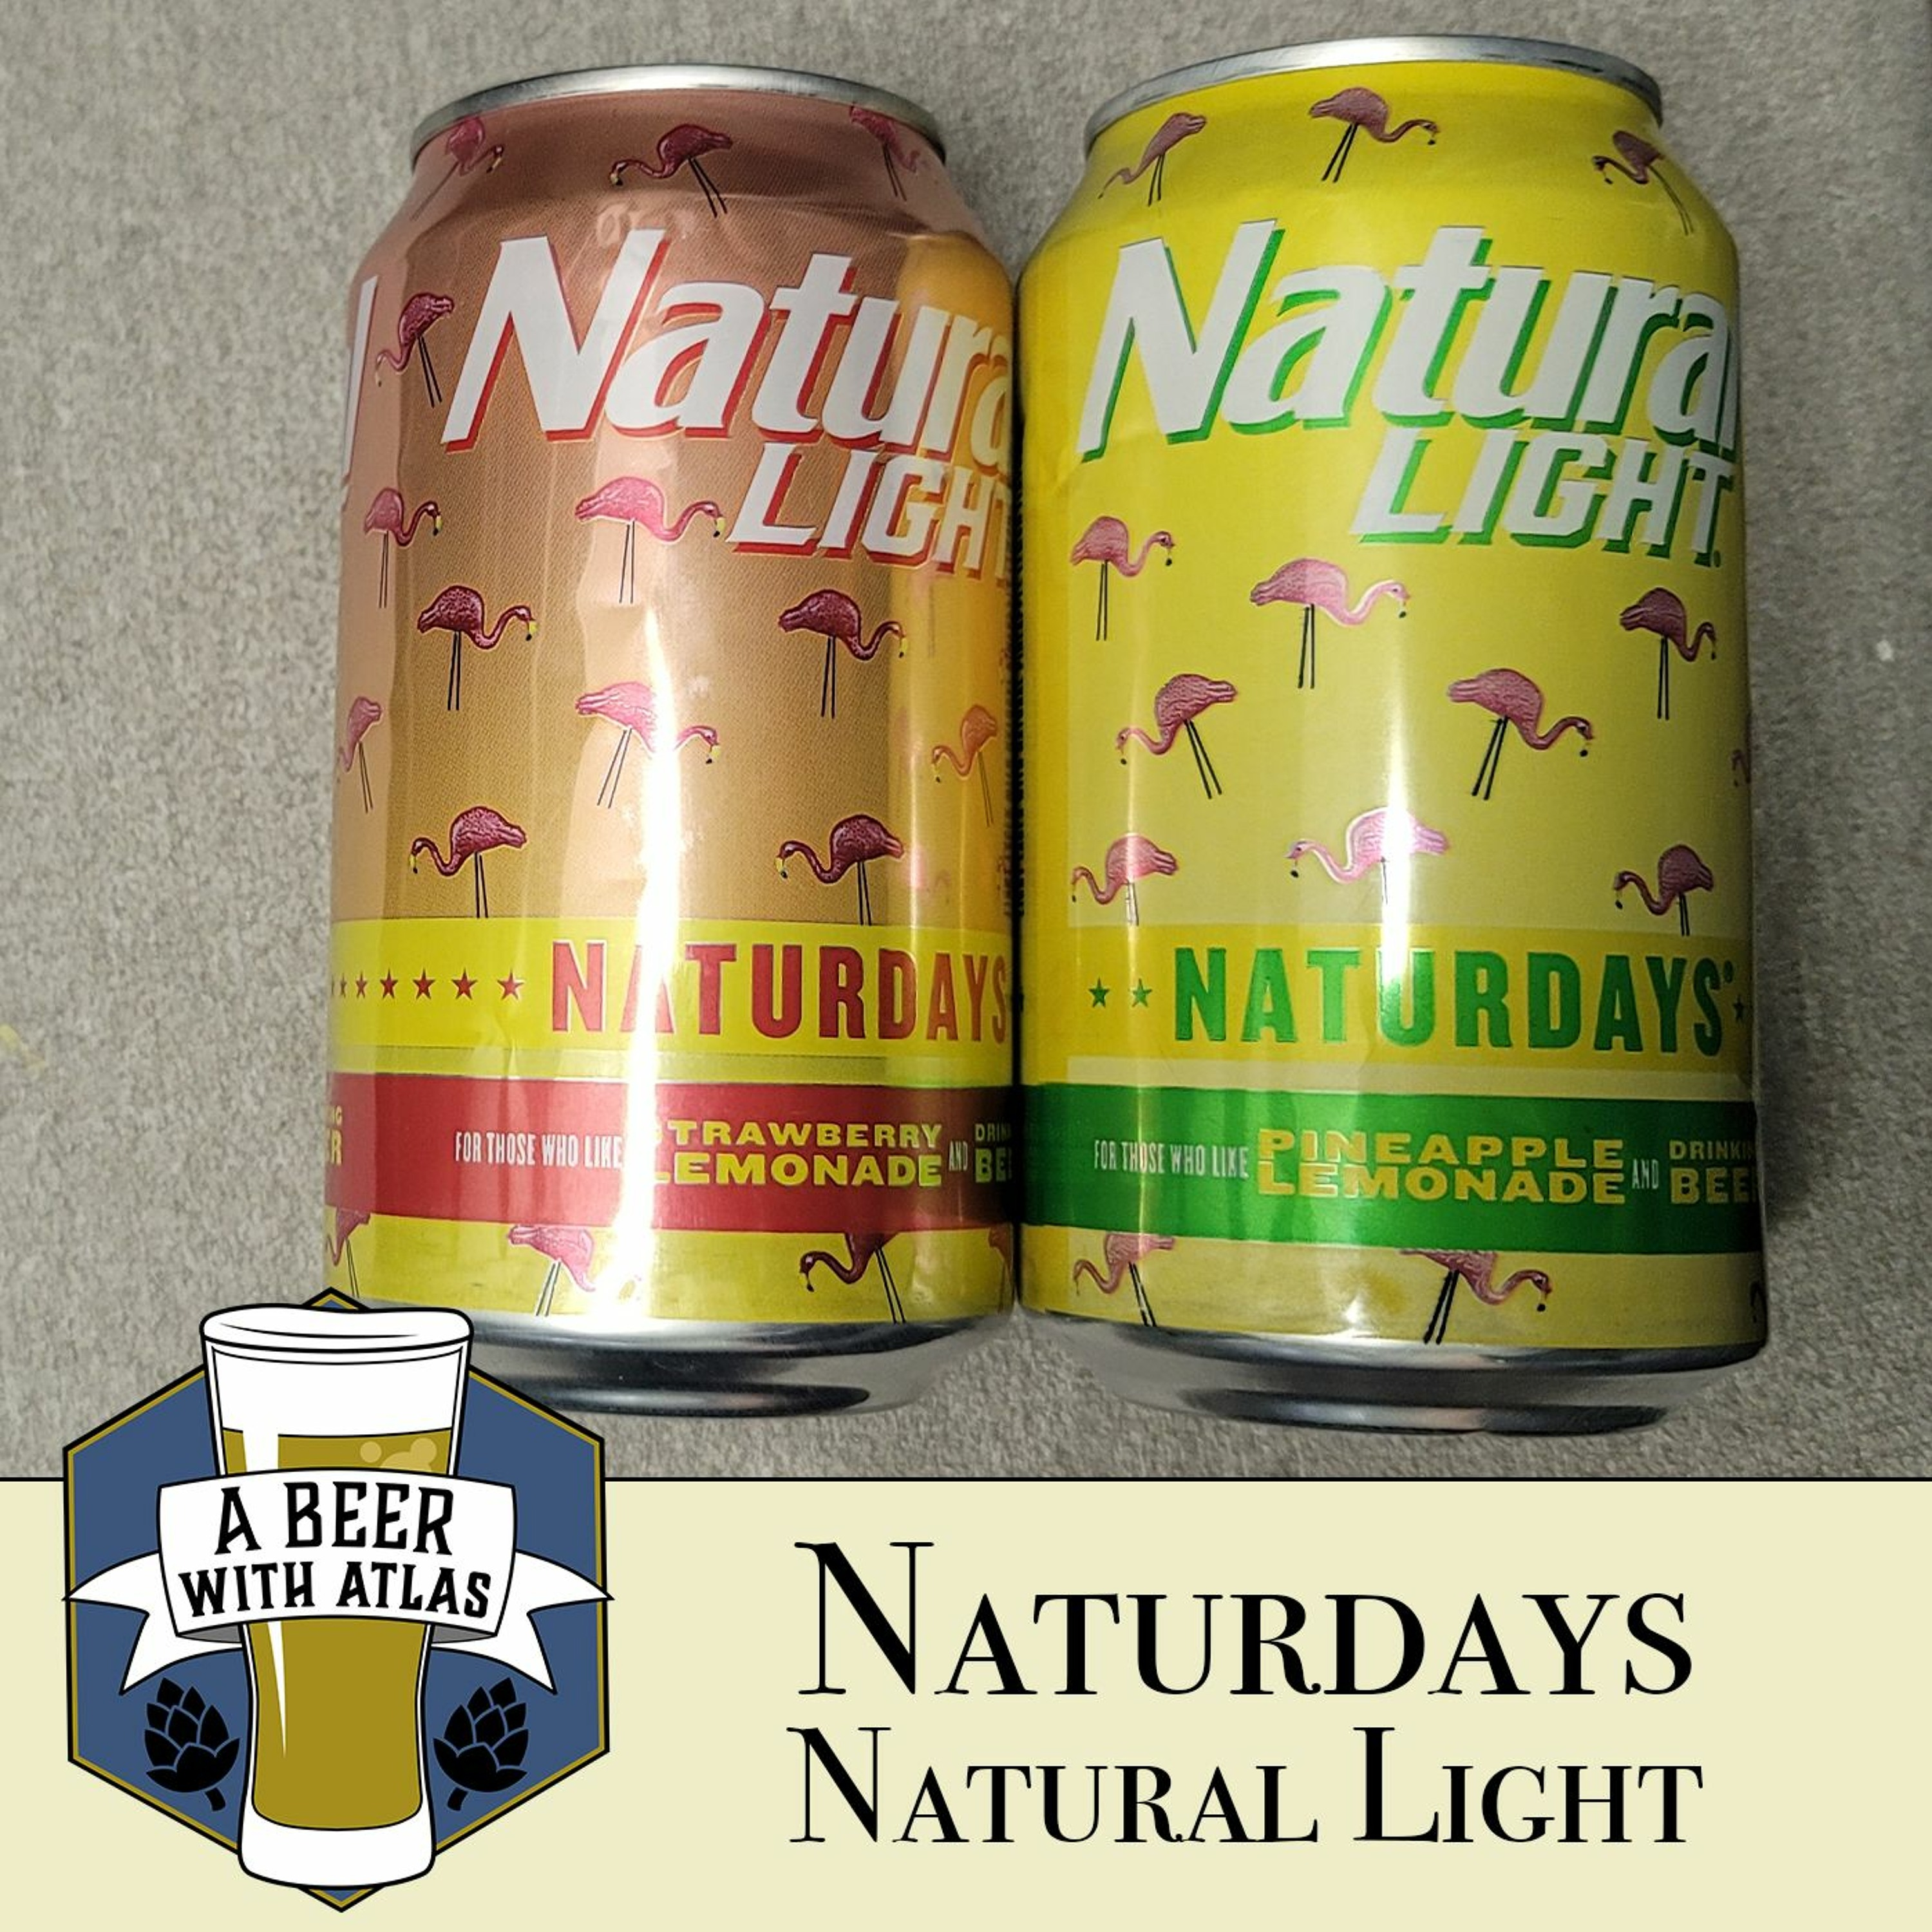 Naturdays by Natural Light - A Beer with Atlas 151, a travel nurse podcast